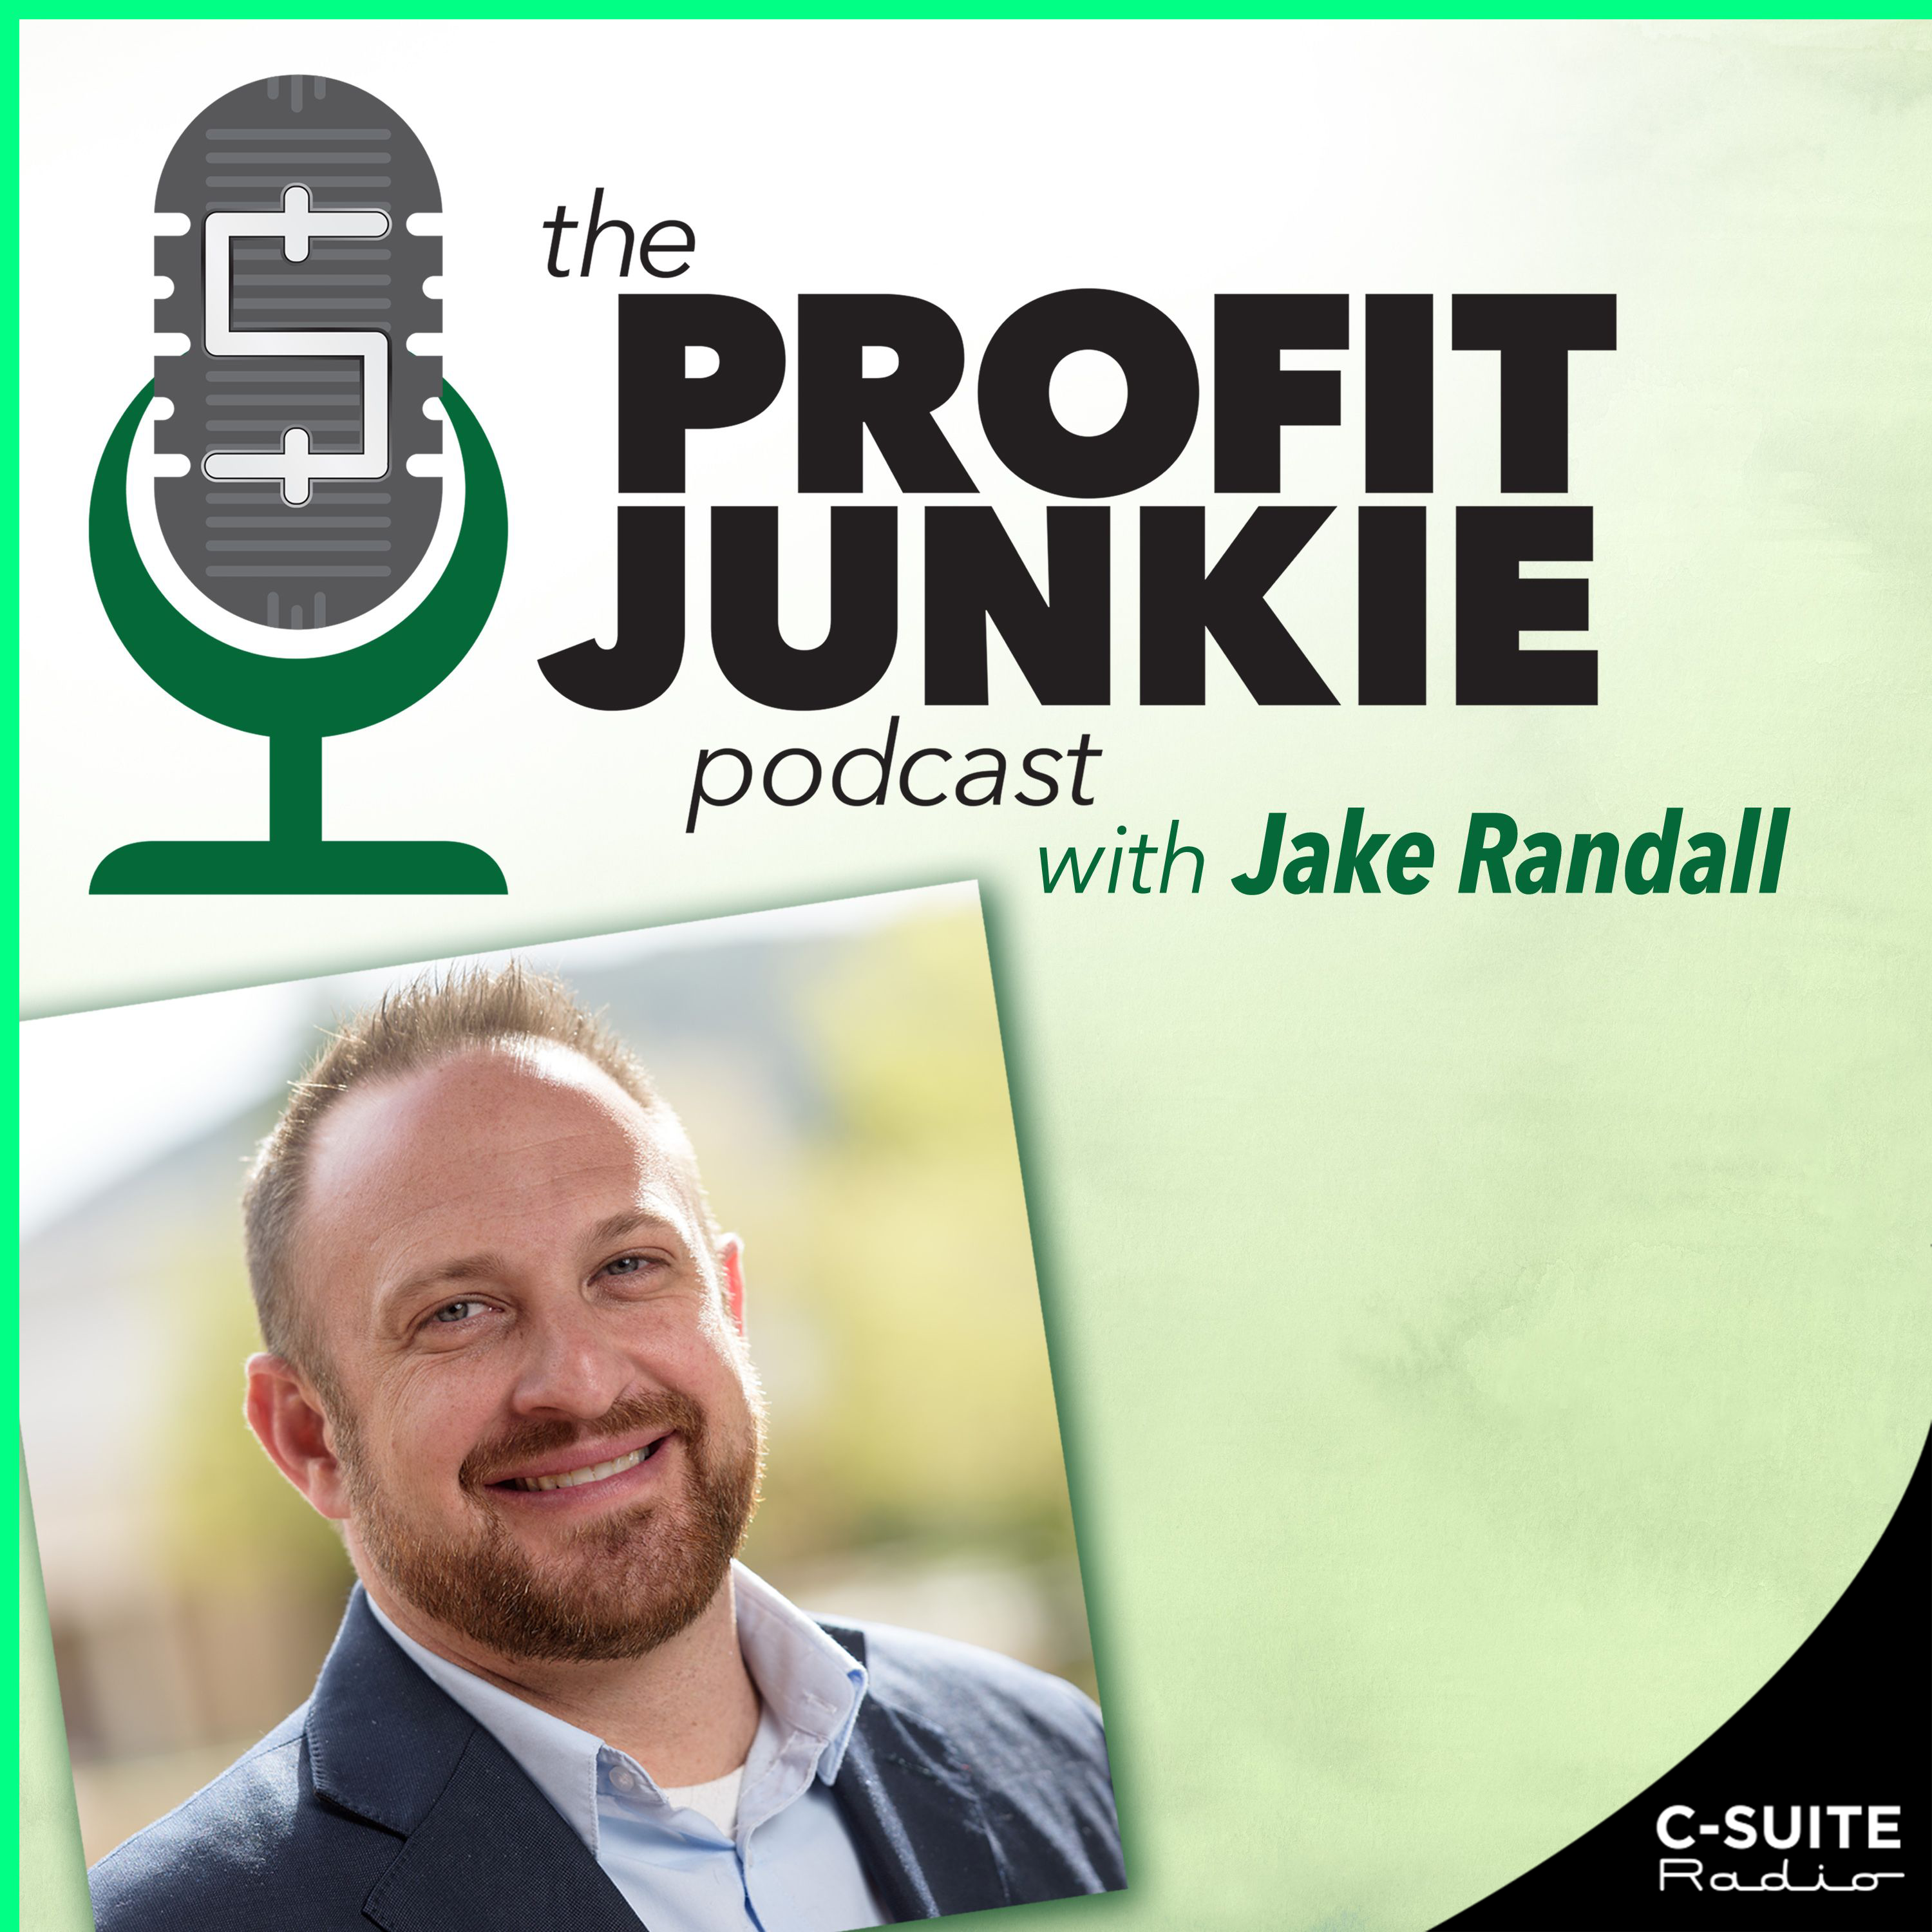 The Profit Junkie